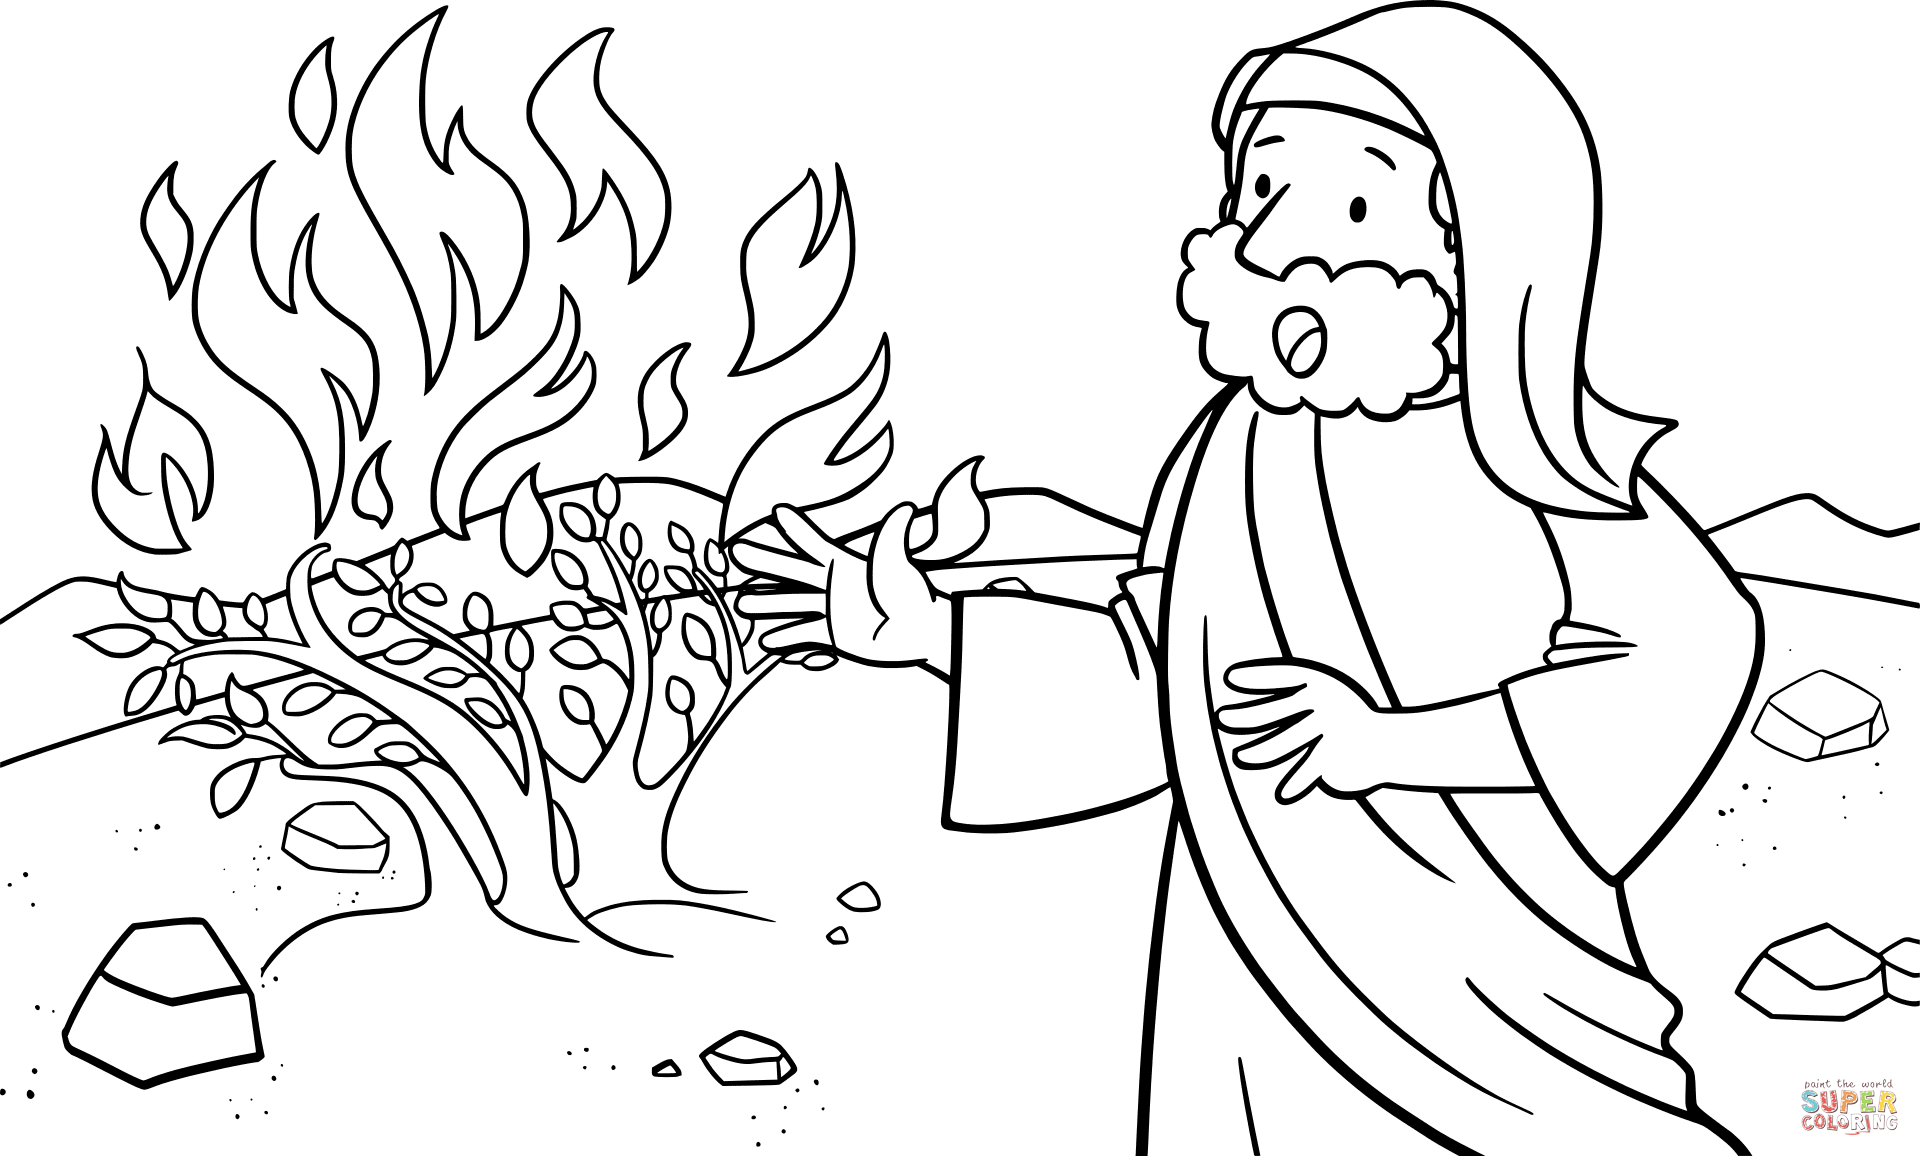 Moses Talking To God On The Mount Horeb Coloring Page From Moses Category Select From 29042 Printable Crafts Bible Coloring Pages Coloring Pages Burning Bush